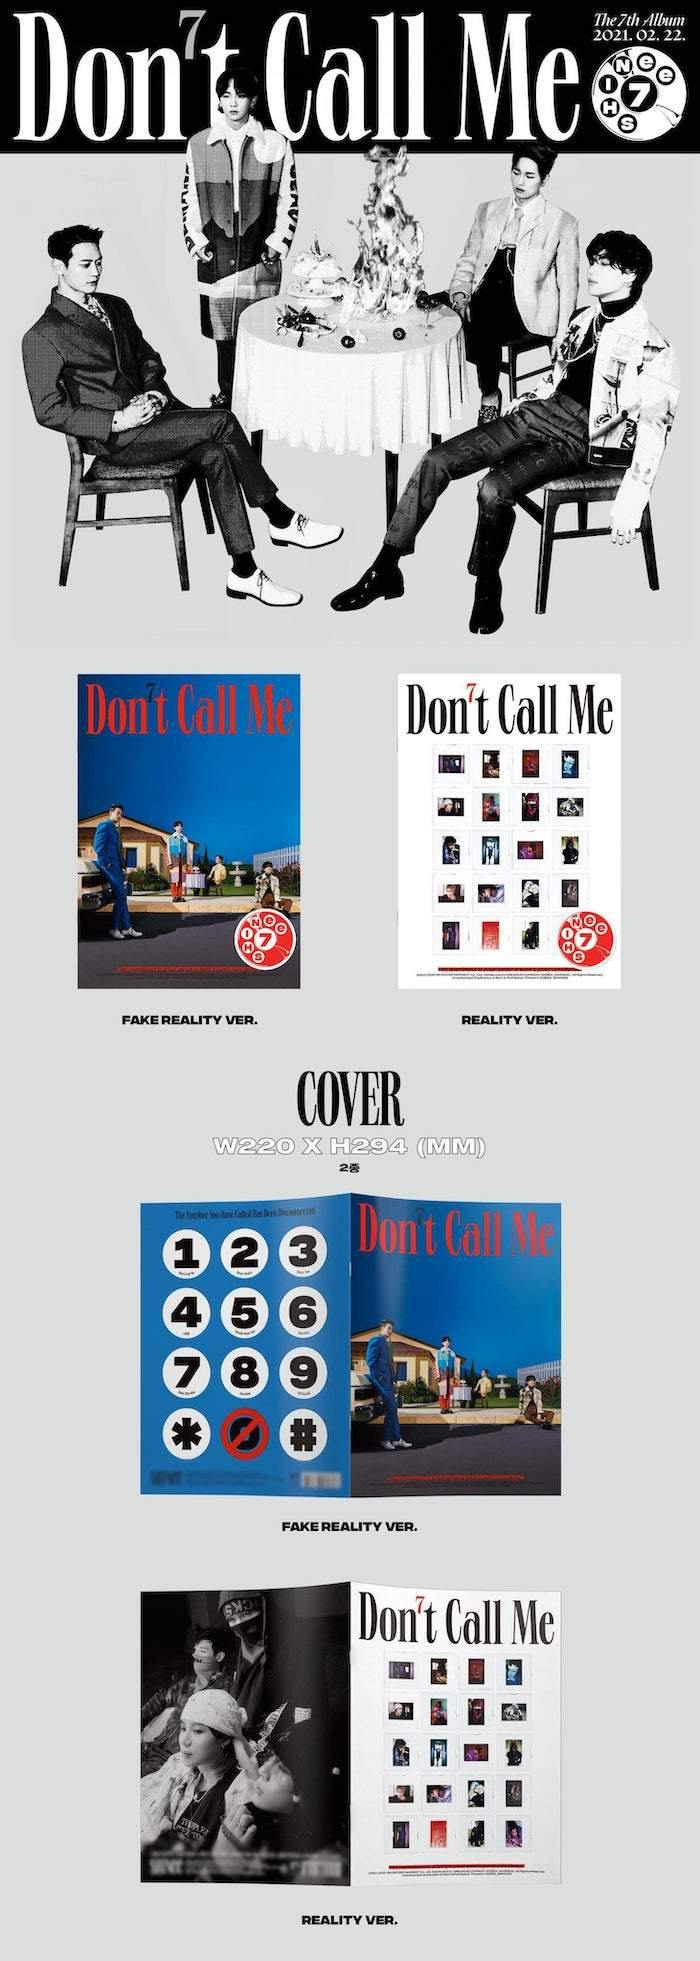 SHINEE - VOL.7 DON'T CALL ME (PHOTOBOOK VER.) - J-Store Online